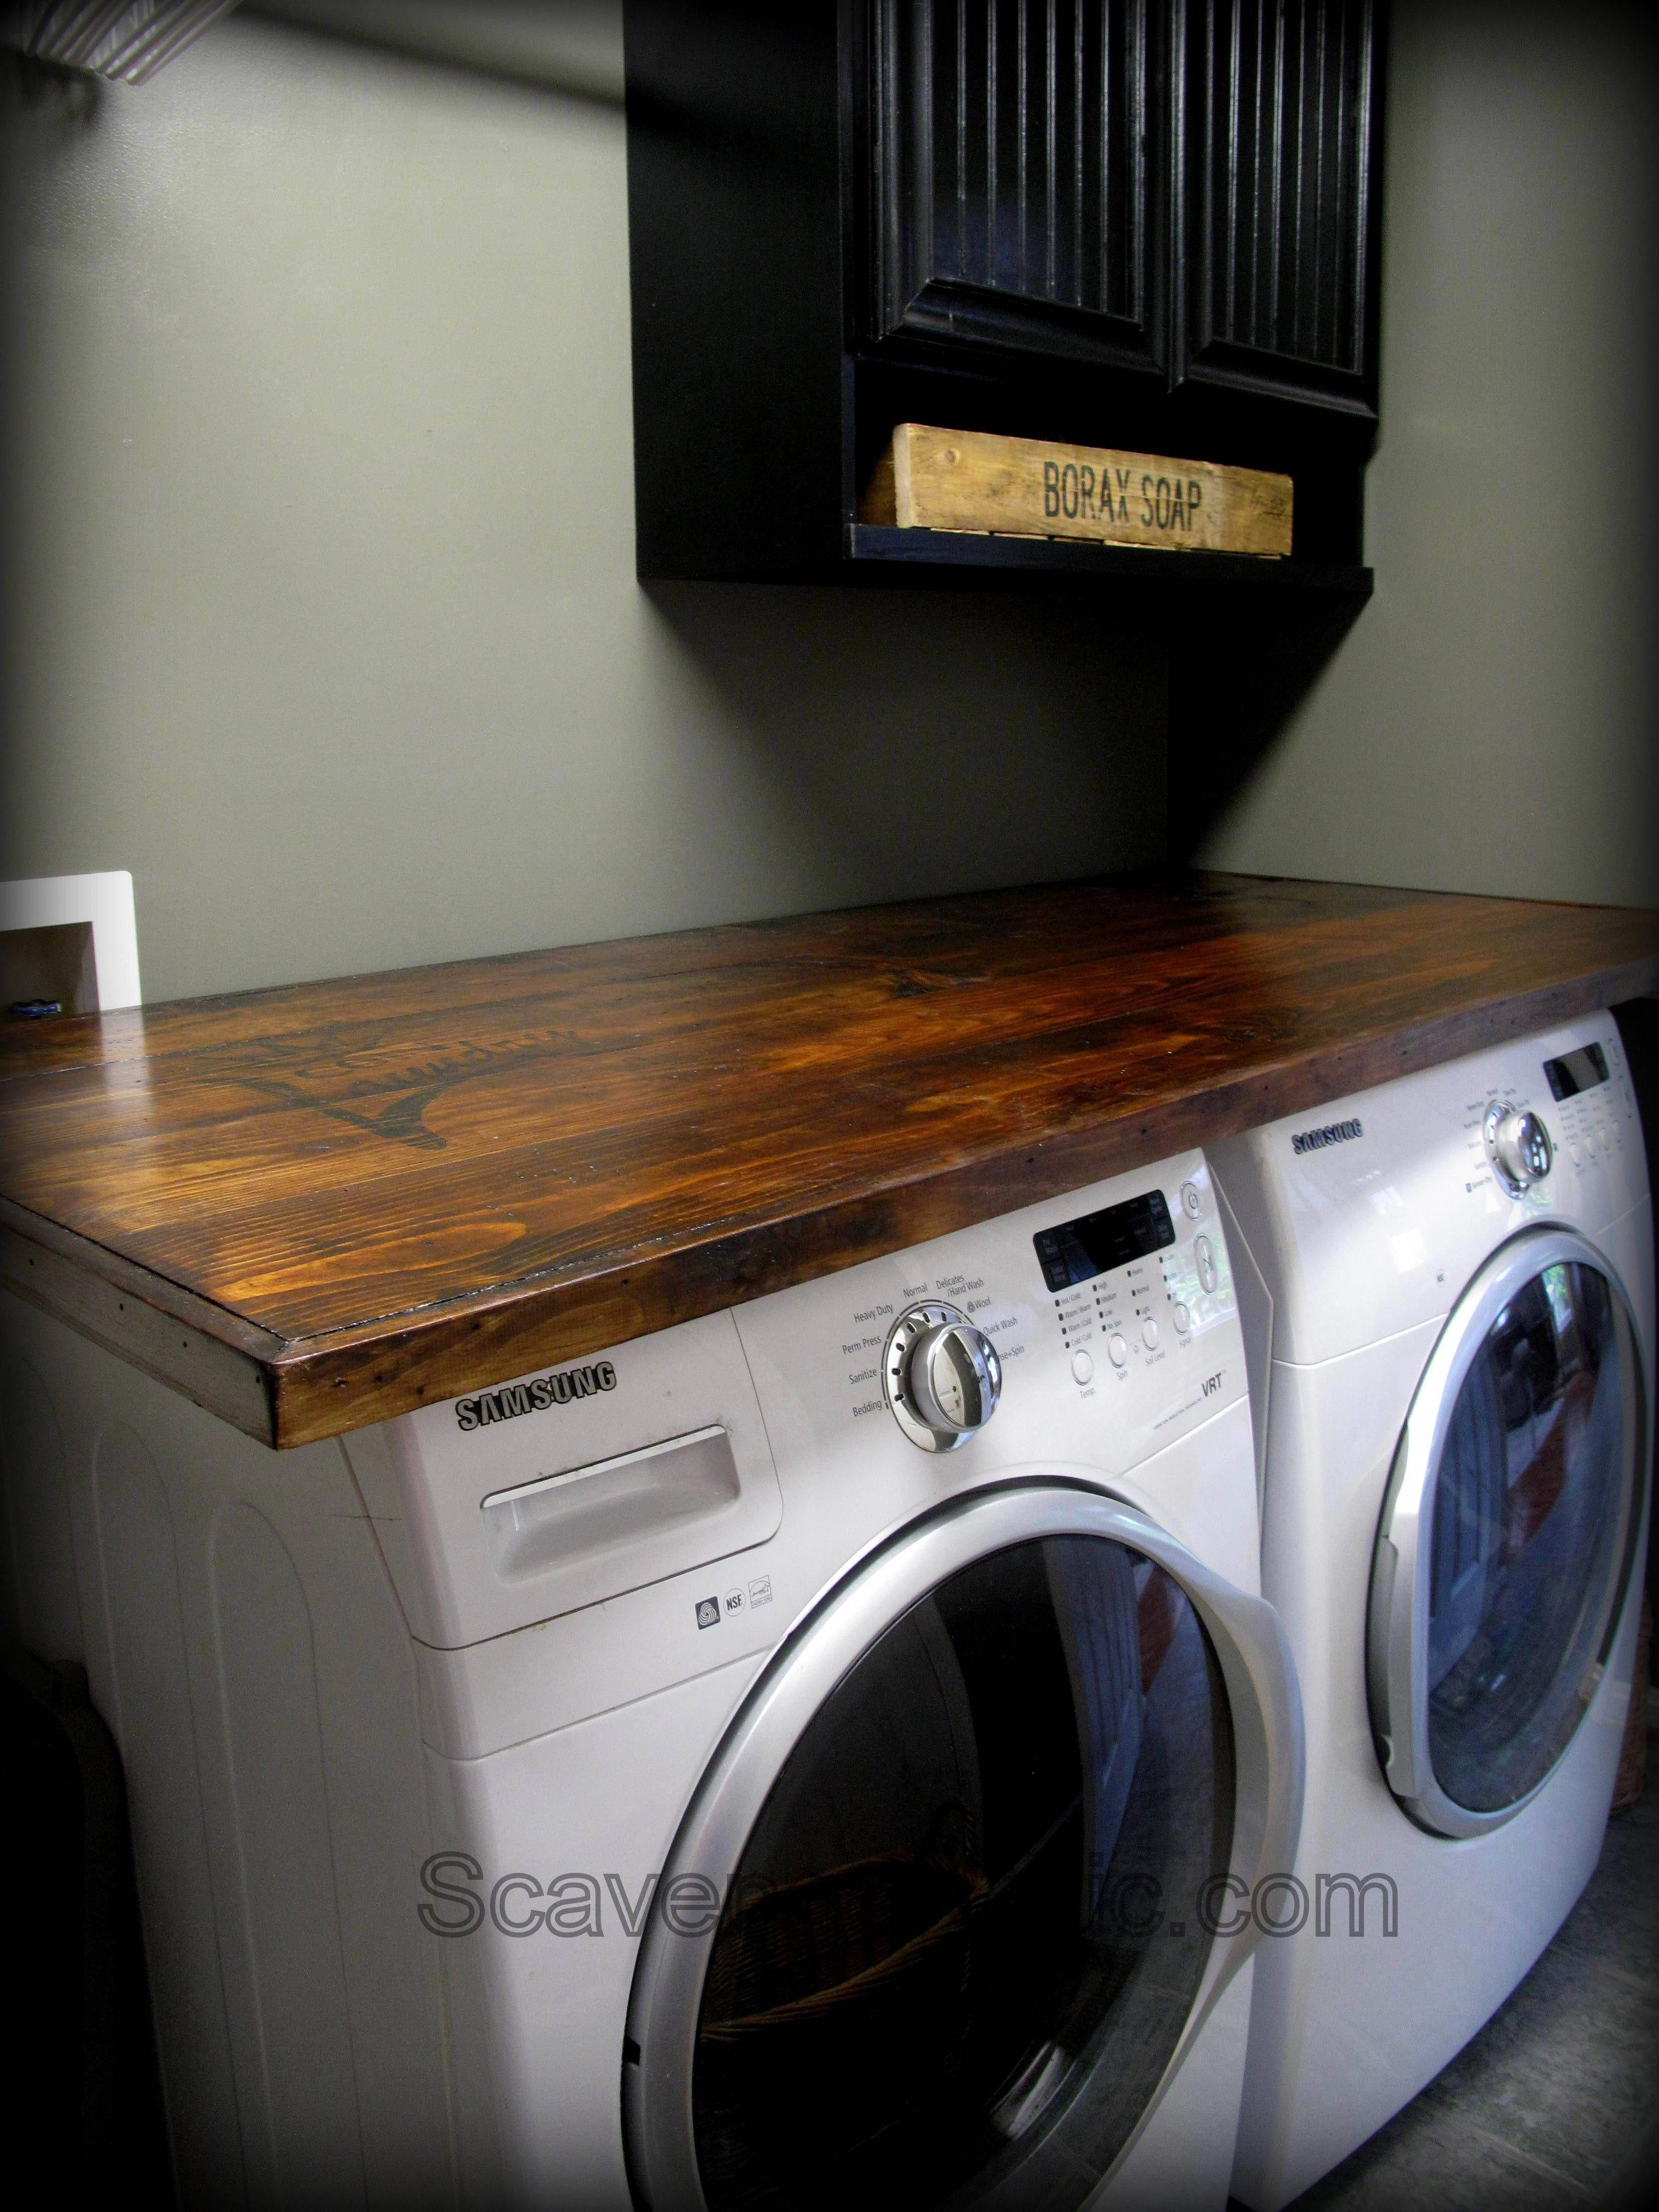 Design Your Own Laundry Room: How To Make Your Own Laundry Wood Countertop